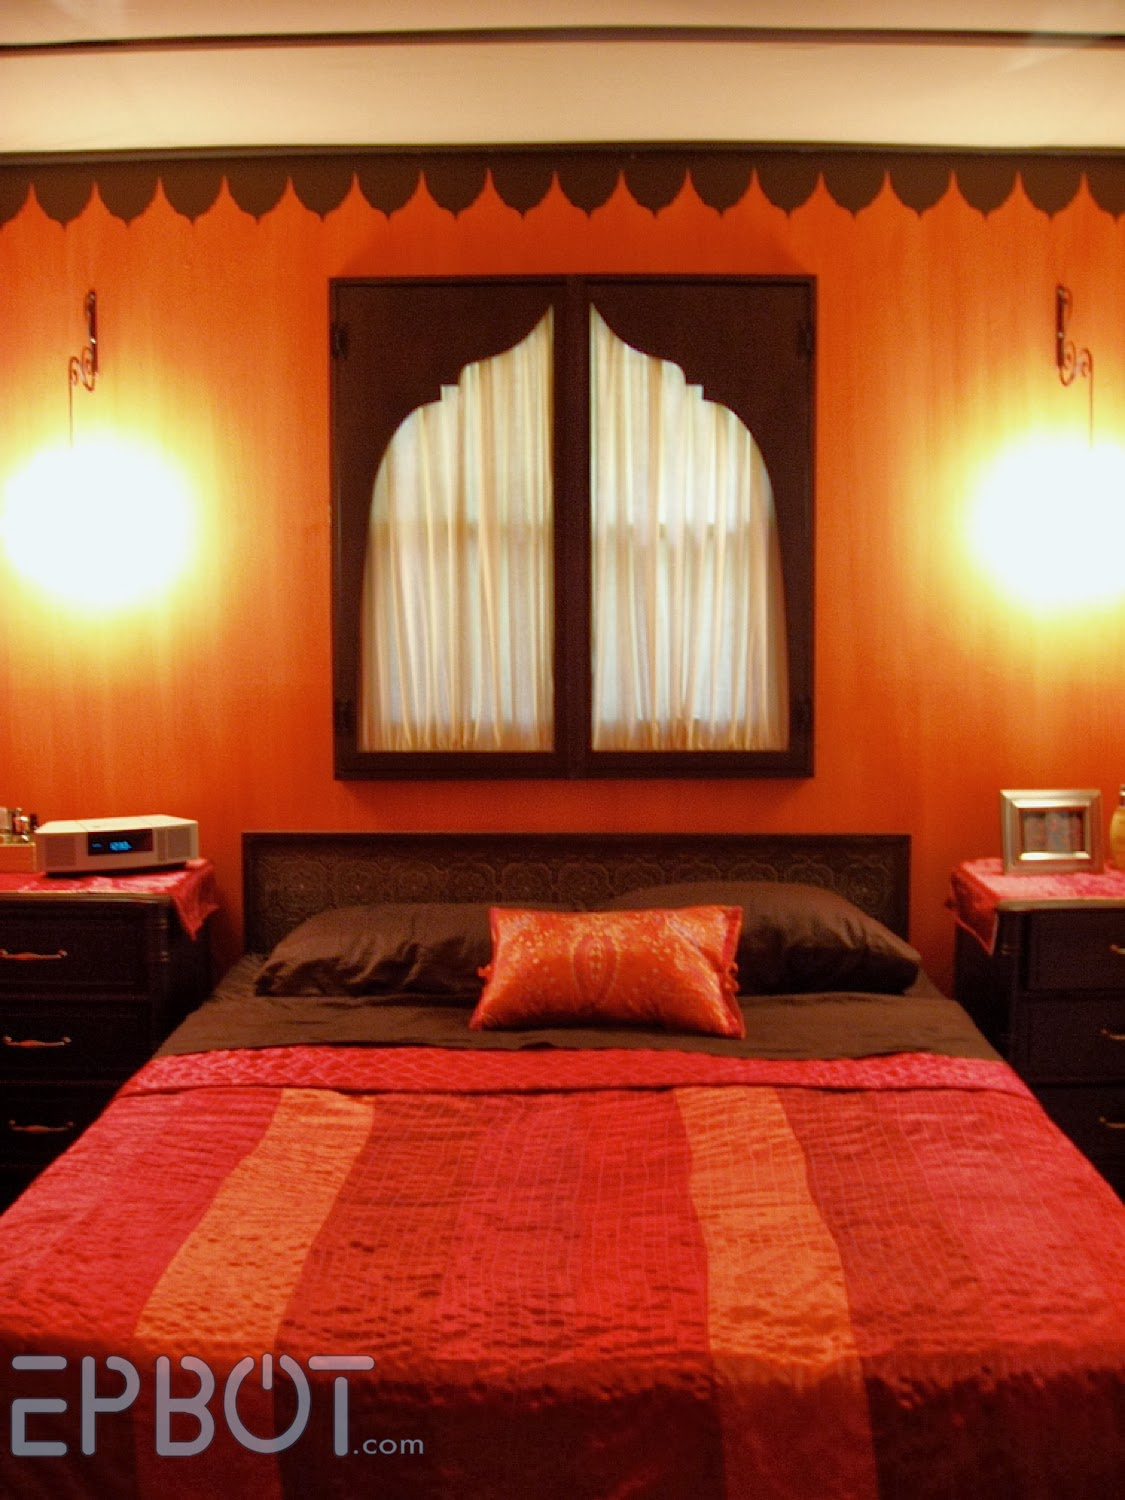 For The Last 8 Years Or So Our Bedroom Has Been A Dark Indian Inspired Tent Complete With An Actual Fabric Tented Ceiling Bright Orange Stri D Walls